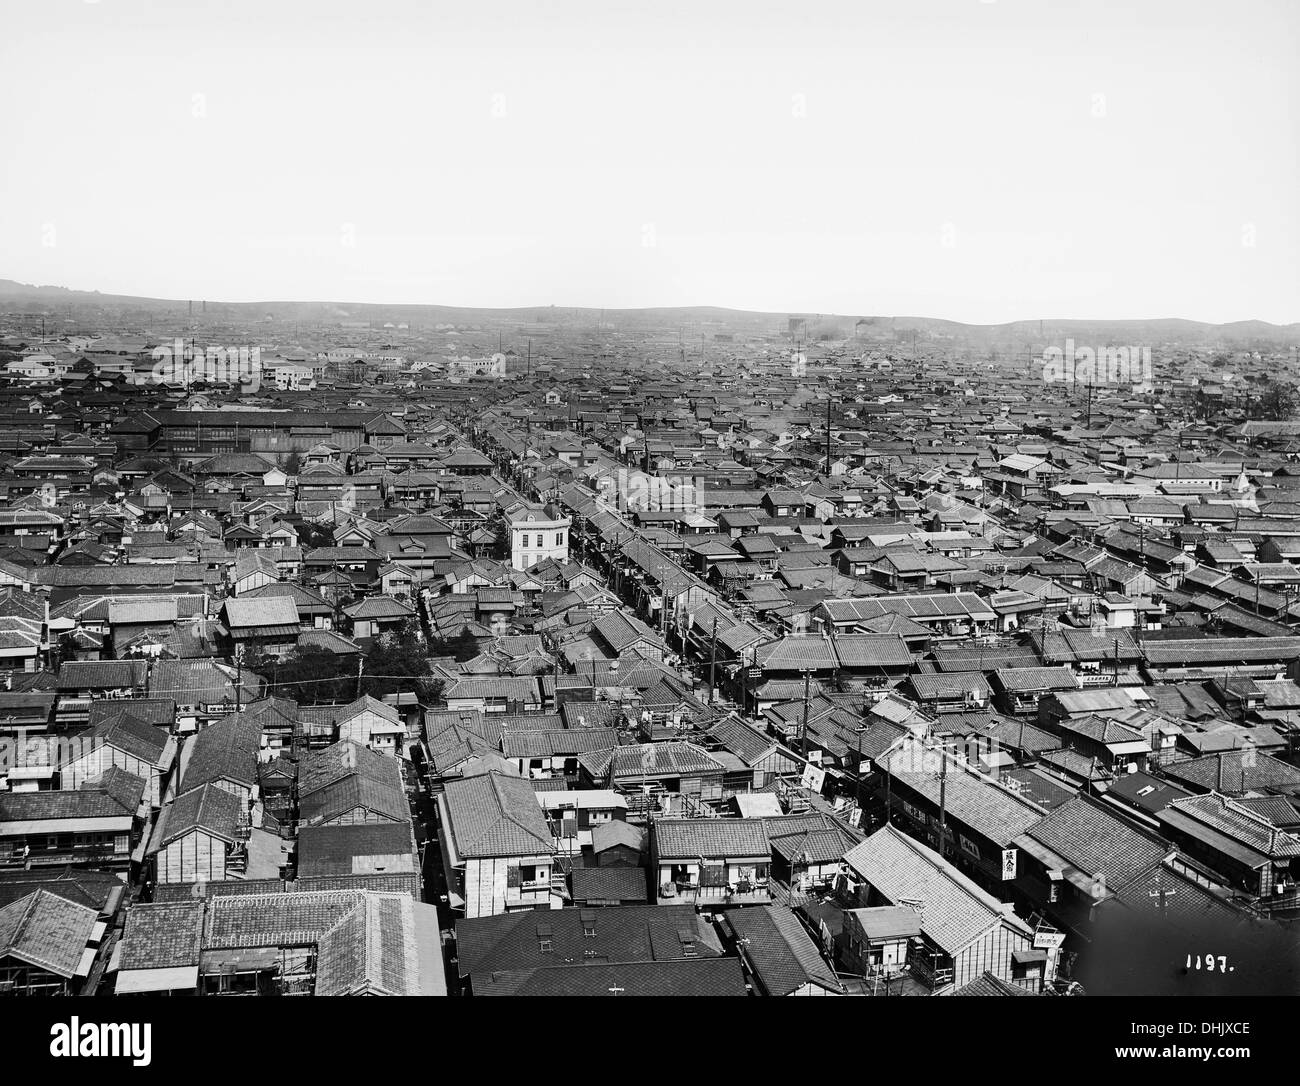 View over a part of Tokyo, Japan, in 1912. The image was taken by the German photographer Oswald Lübeck, one of the earliest representatives of travel photography and ship photography aboard passenger ships. Photo: Deutsche Fotothek/Oswald Lübeck - Stock Image